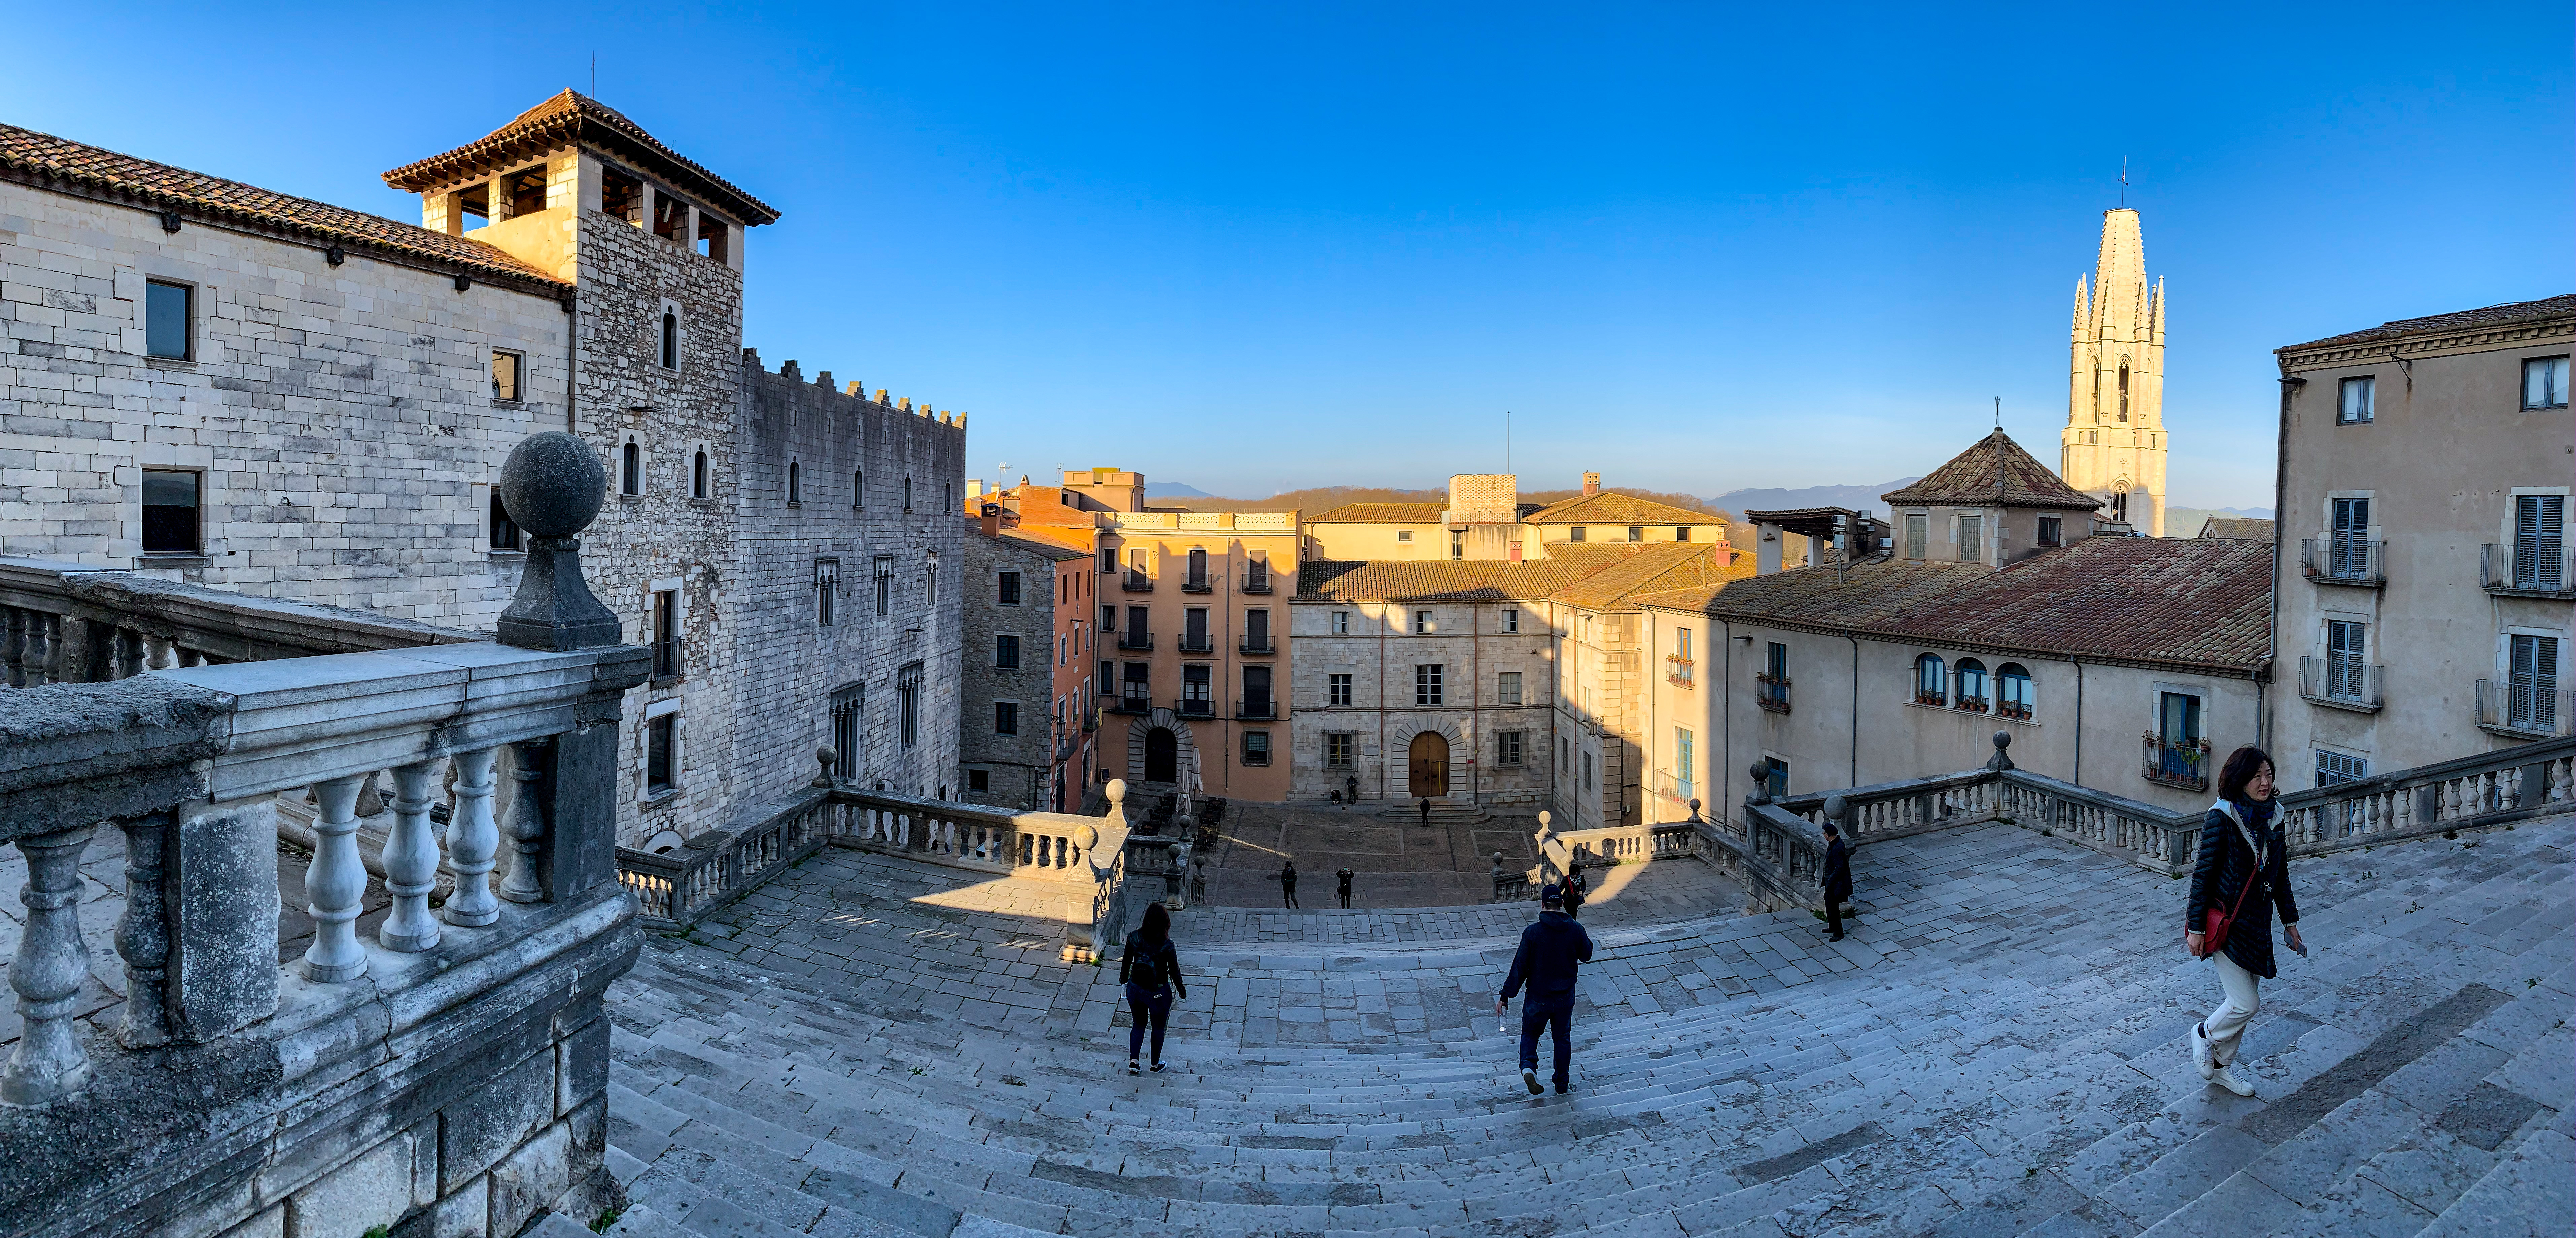 View from in front of Girona Cathedral facing away and down the stairs. We see wide descending stone steps, a couple of people walking in different directions. Small Mediterranean attached houses stand at the bottom. The sun is shining slightly over them.